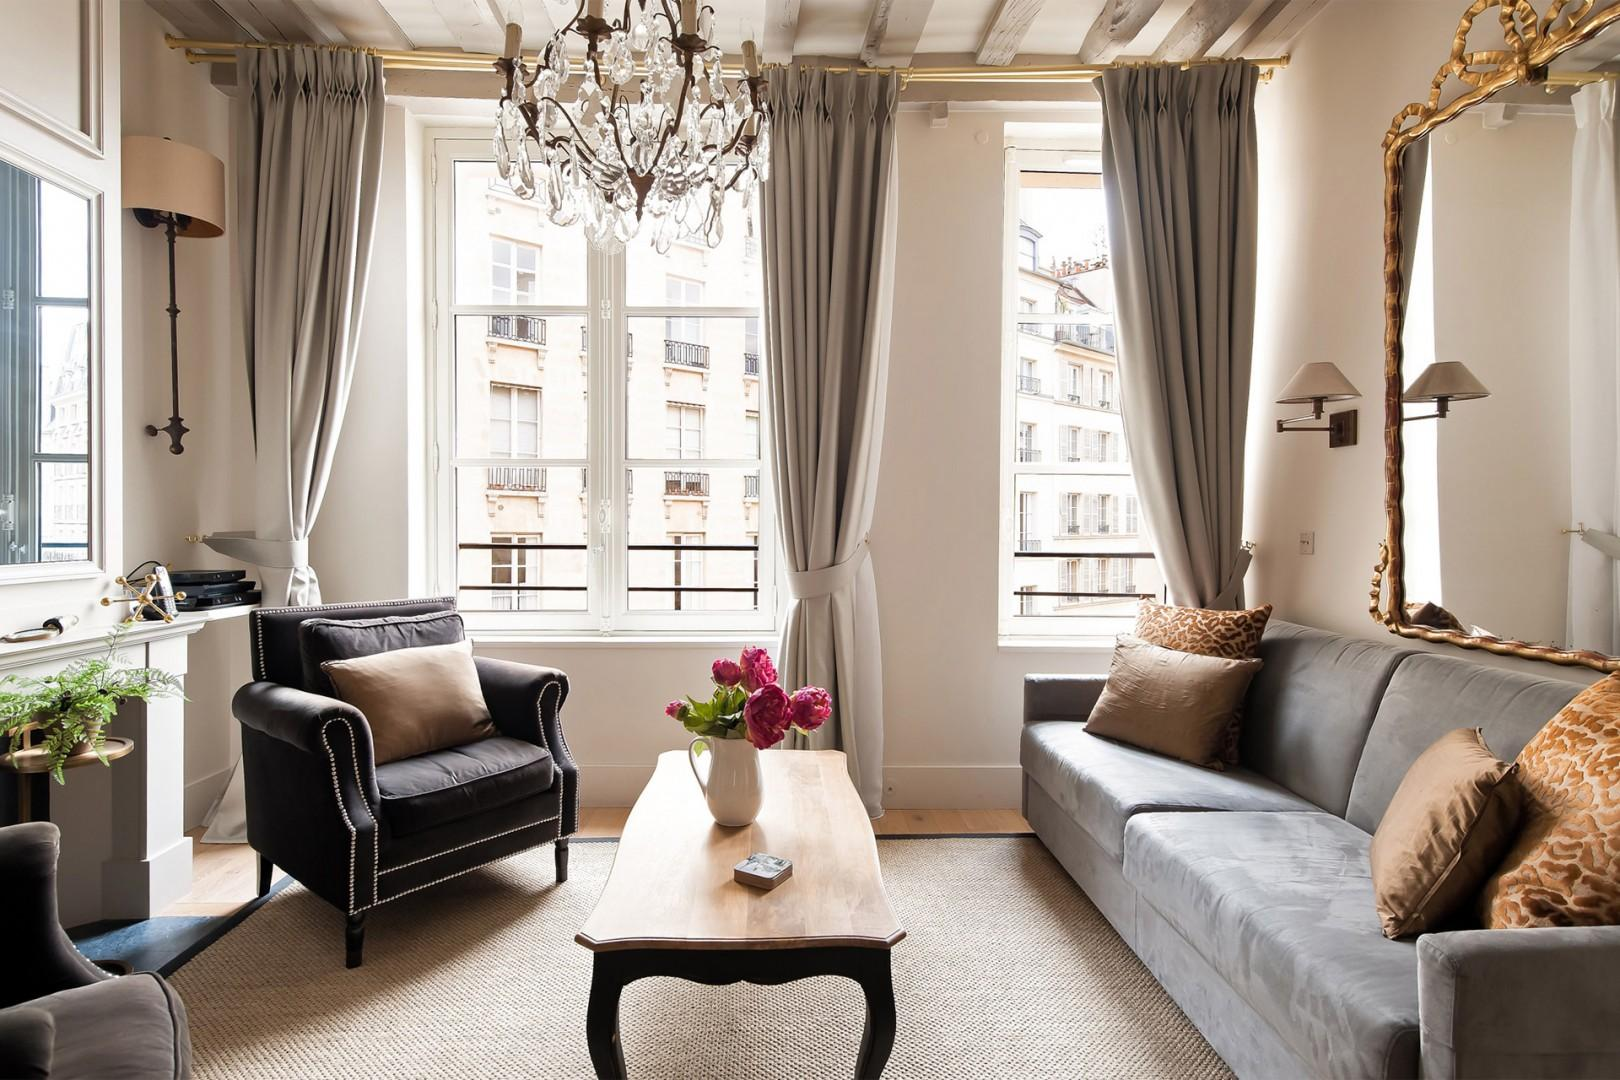 Relax in the style between sightseeing trips in this comfortable living room.